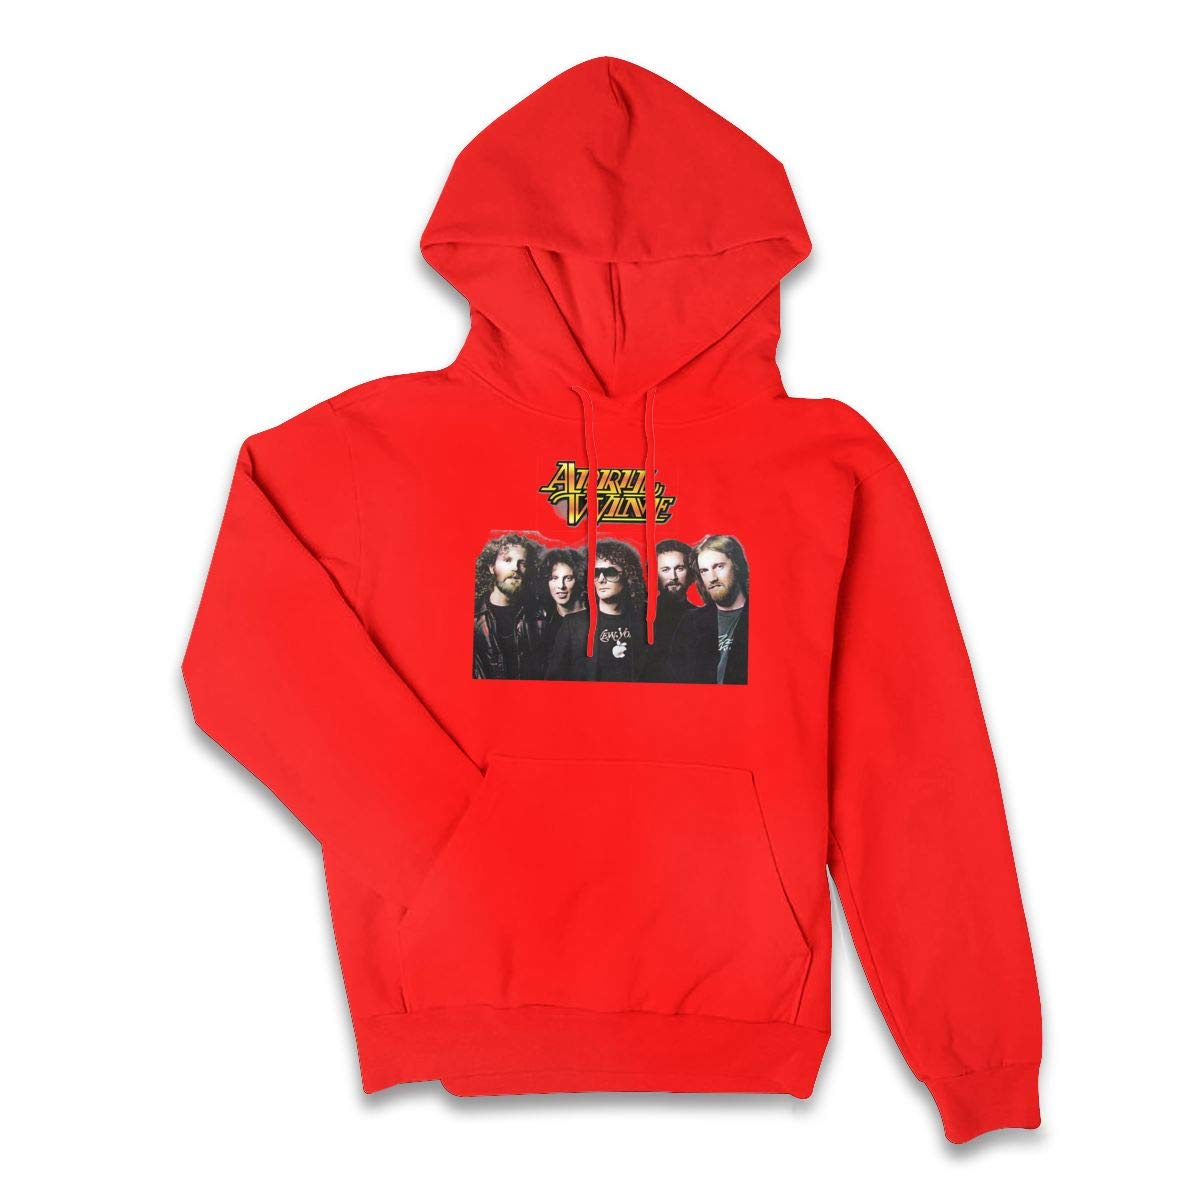 Erman Color Name Casual April Wine Music Cool Pullover Hooded Shirts With Pocket X